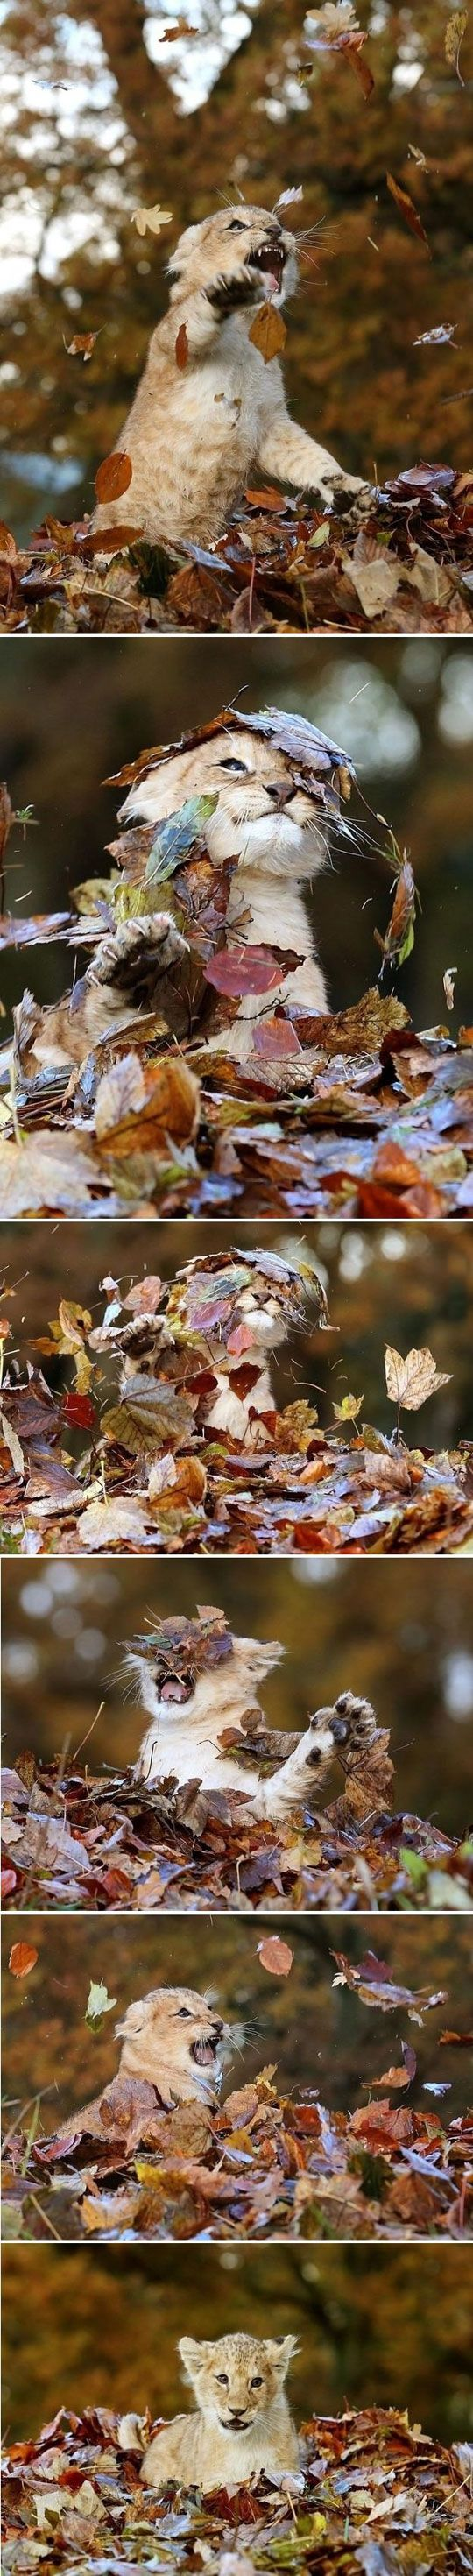 *~Baby Lion Playing With Leaves